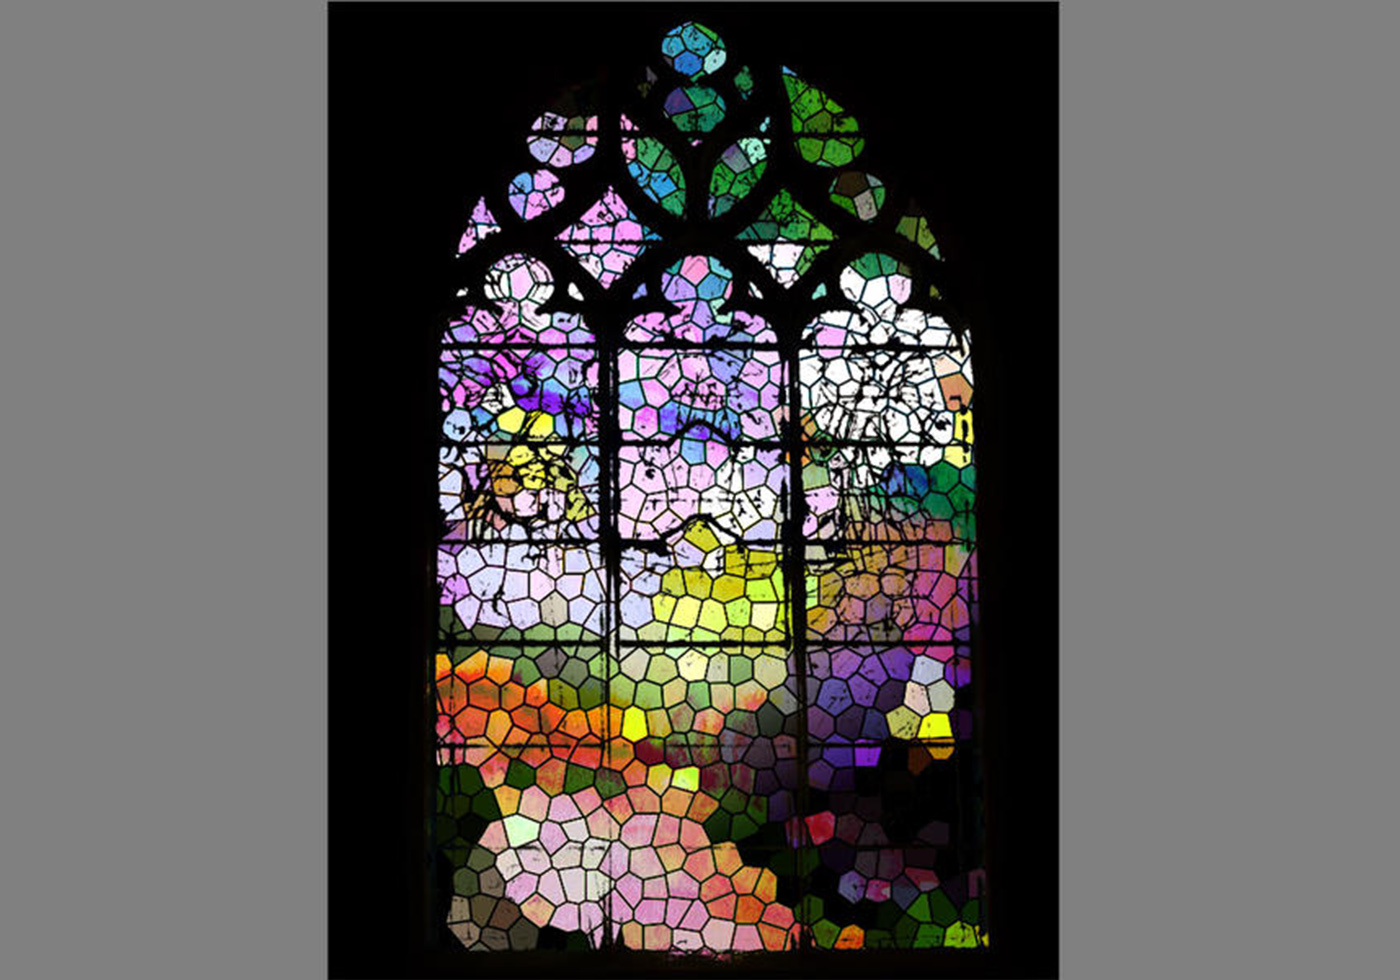 Stained glass window psd template free psds at brusheezy for Window design template